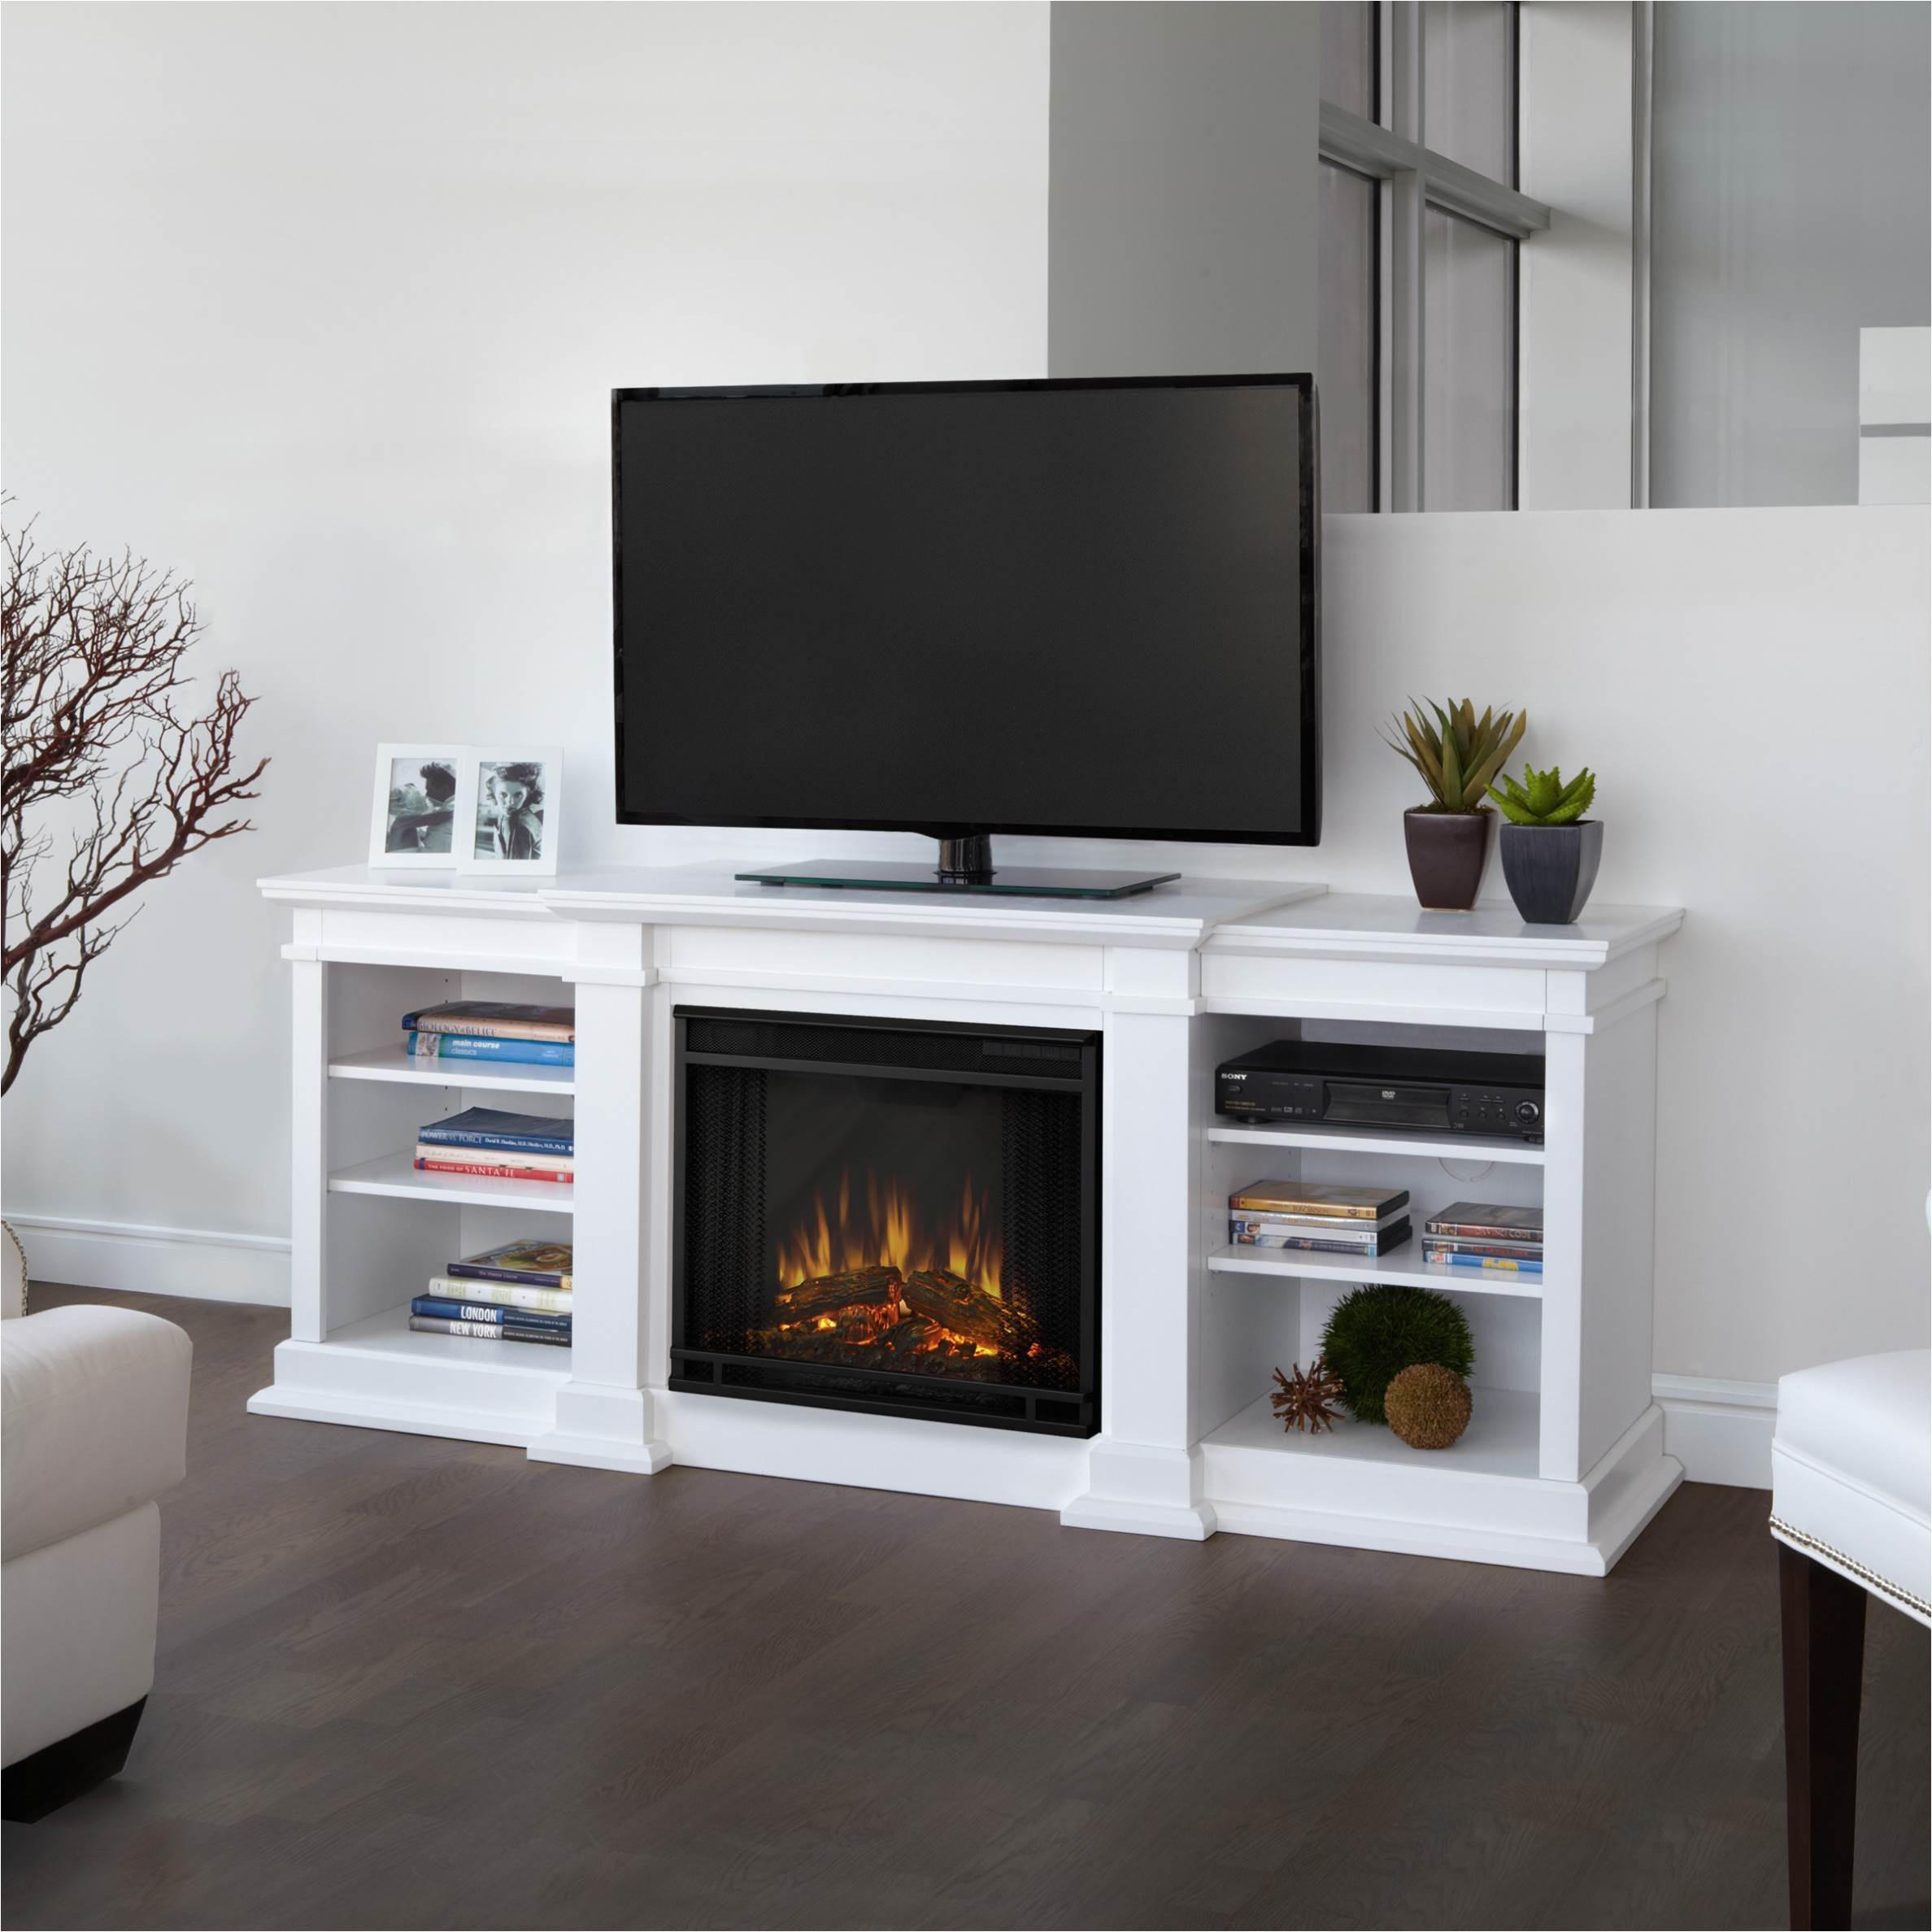 infrared quartz electric fireplace fireplace tv stand combo best electric fireplace tv stand reviews costco electric